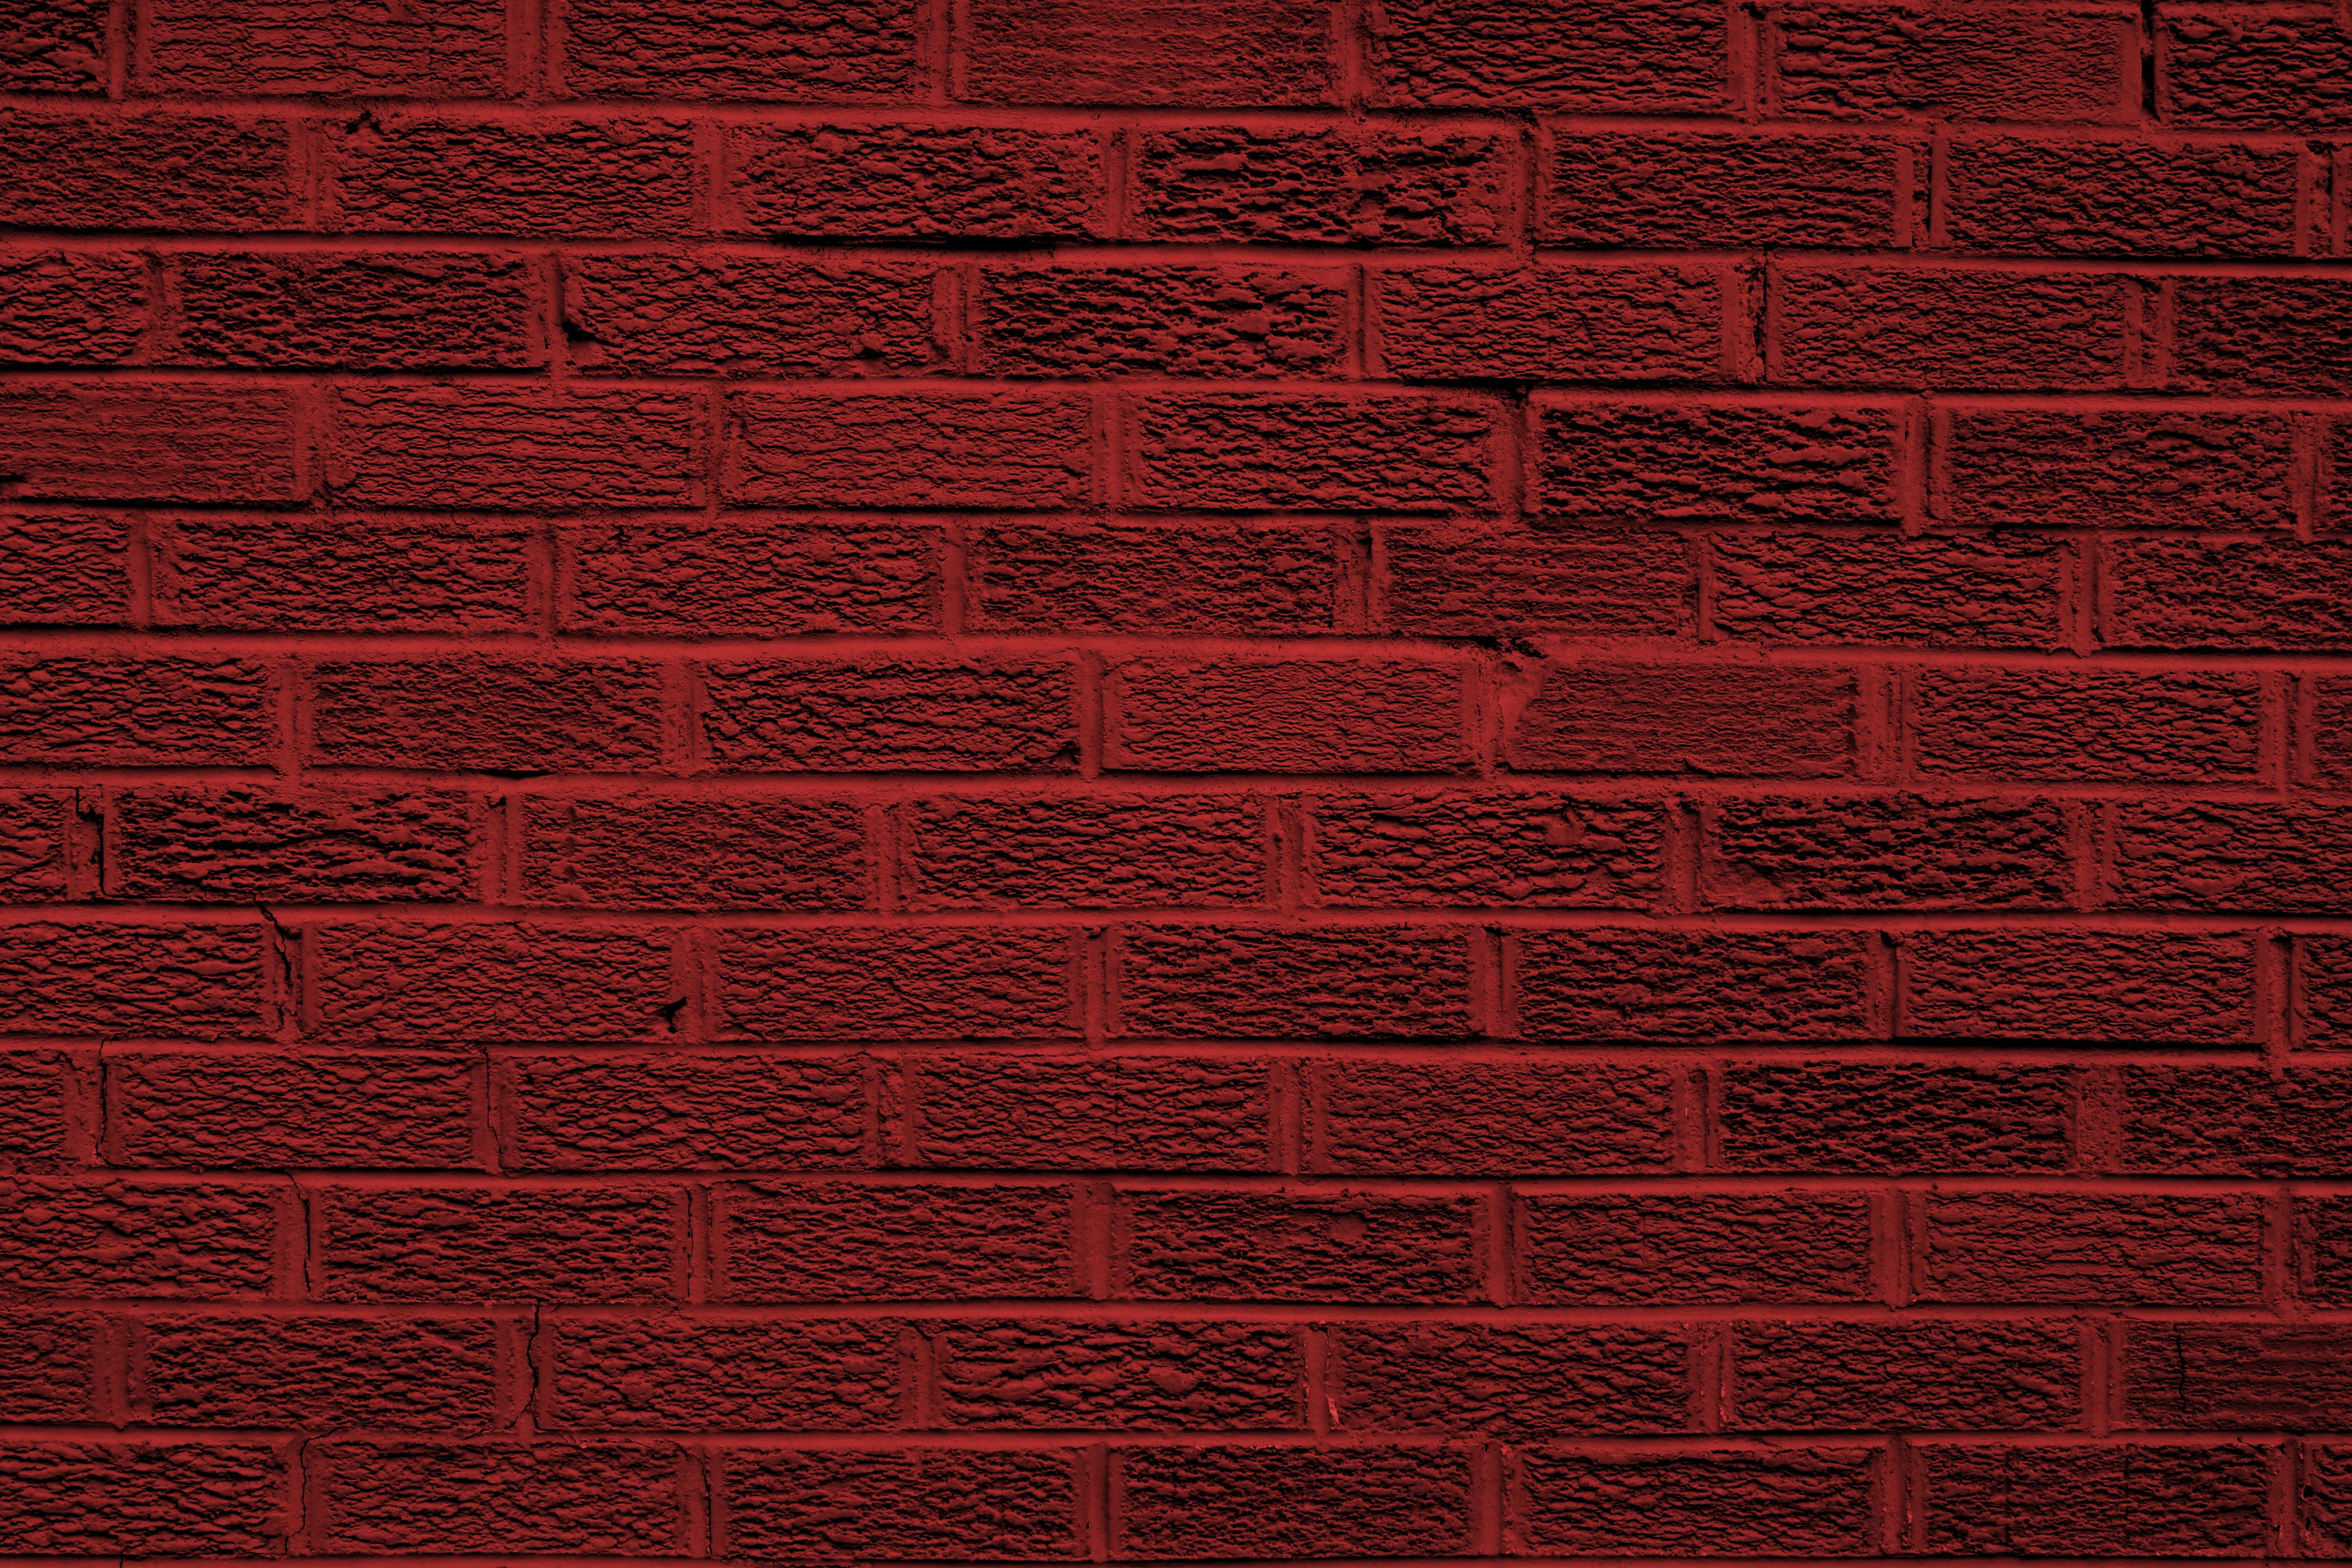 Red Brick Patterns http://www.photos-public-domain.com/2011/03/24/red-colored-brick-wall-texture/